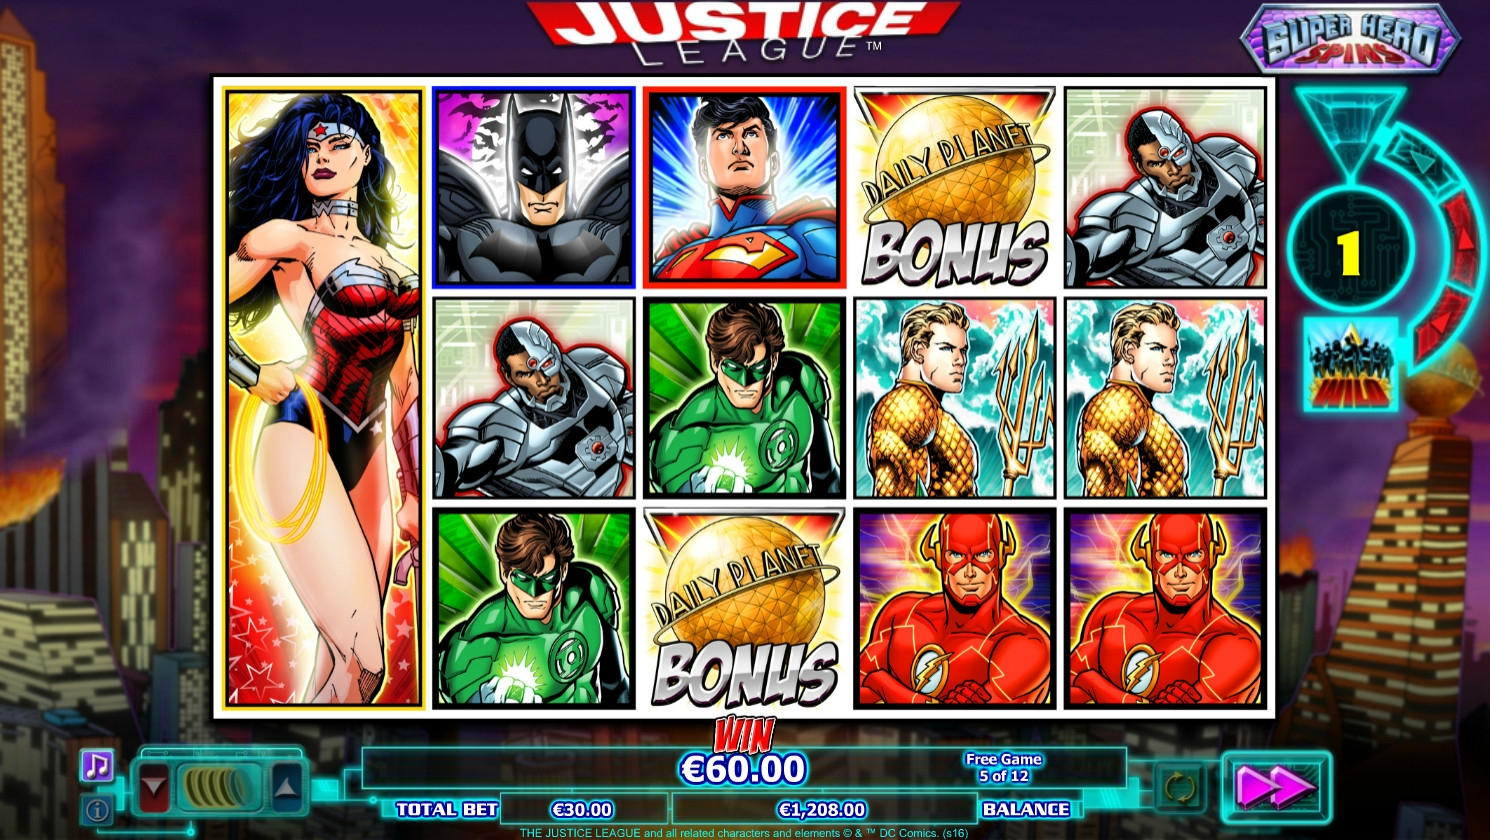 Justice League (Justice League) from category Slots